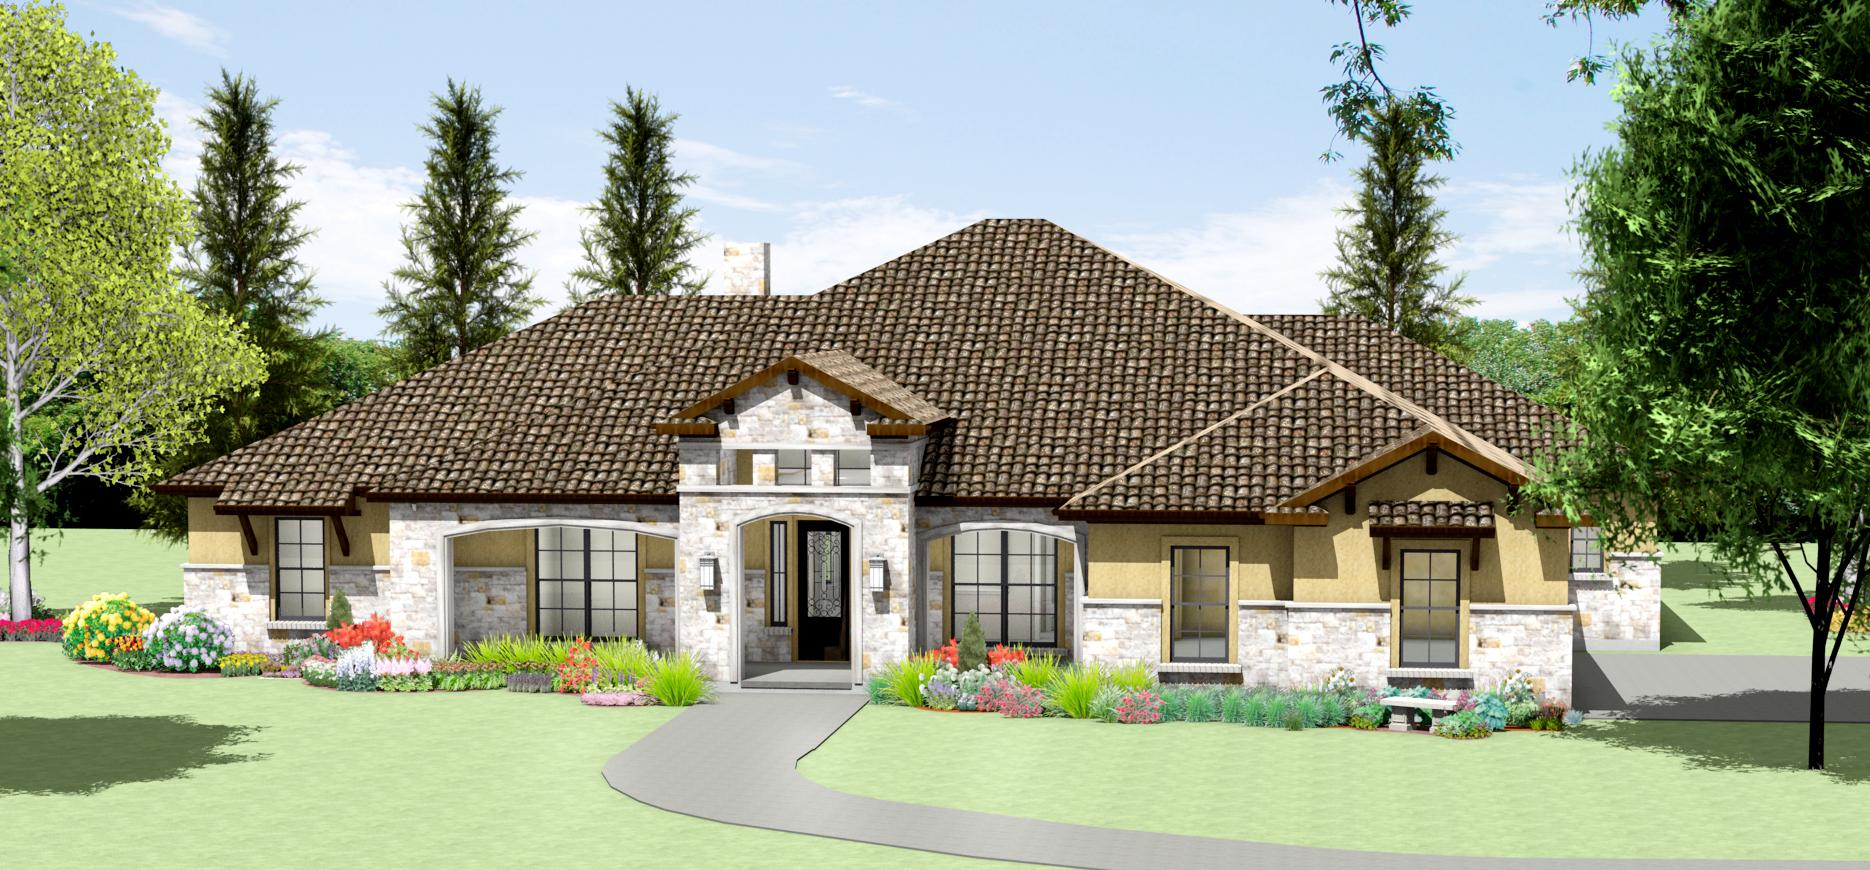 S3450r texas tuscan design texas house plans over 700 for Tuscan house plan